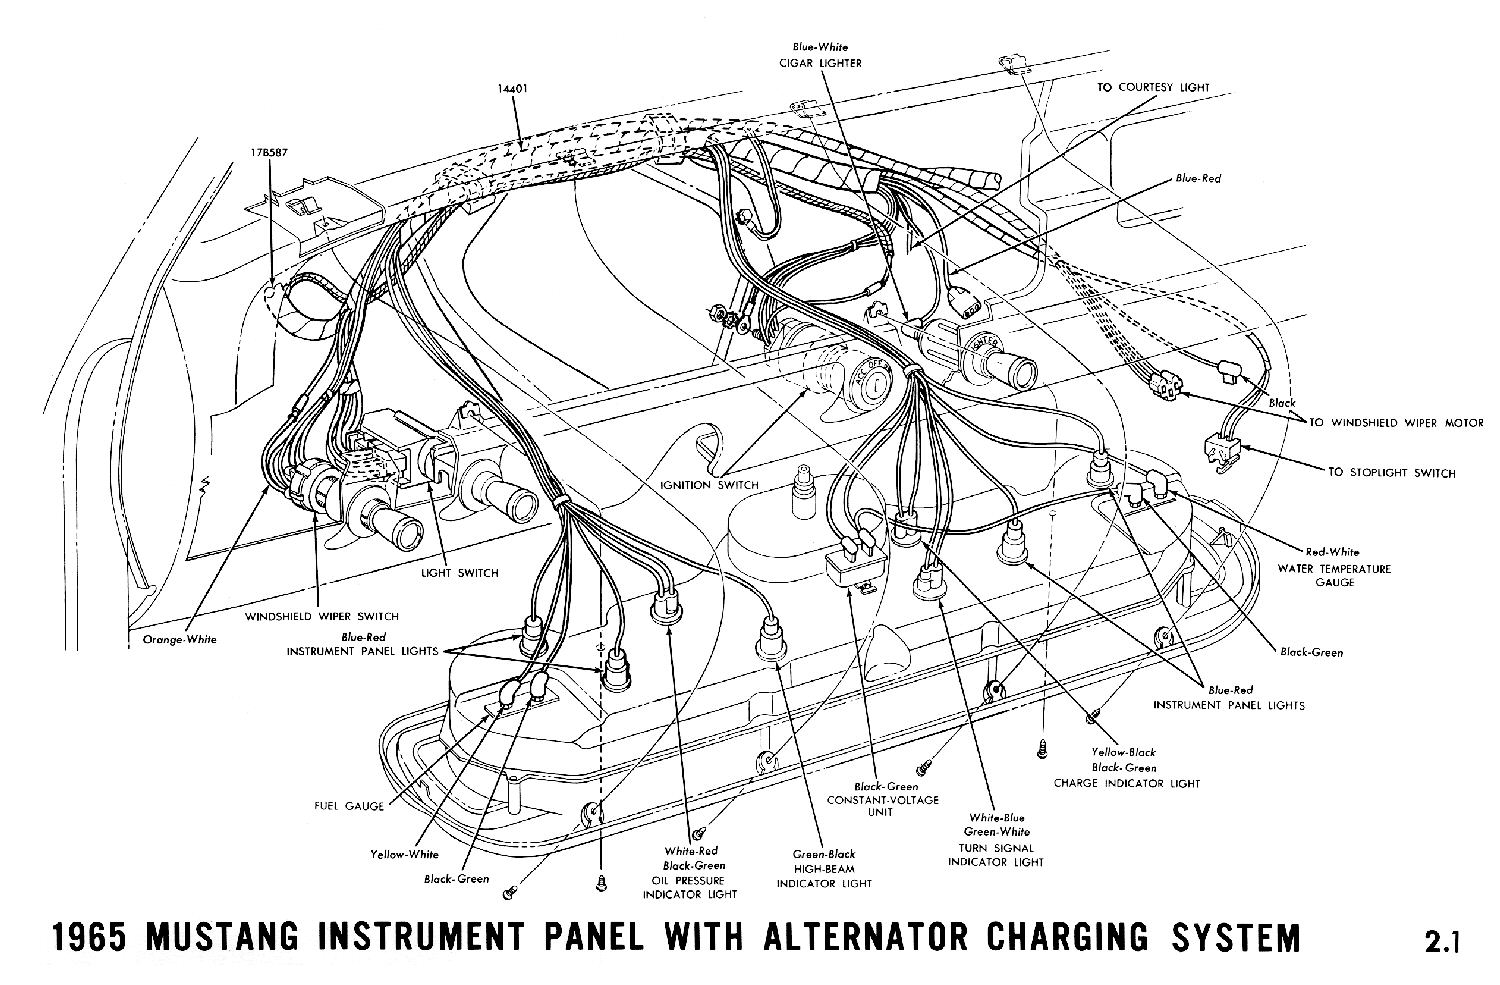 hight resolution of 65 mustang wiring harness wiring diagram used1965 mustang wiring diagrams average joe restoration 65 mustang wiring